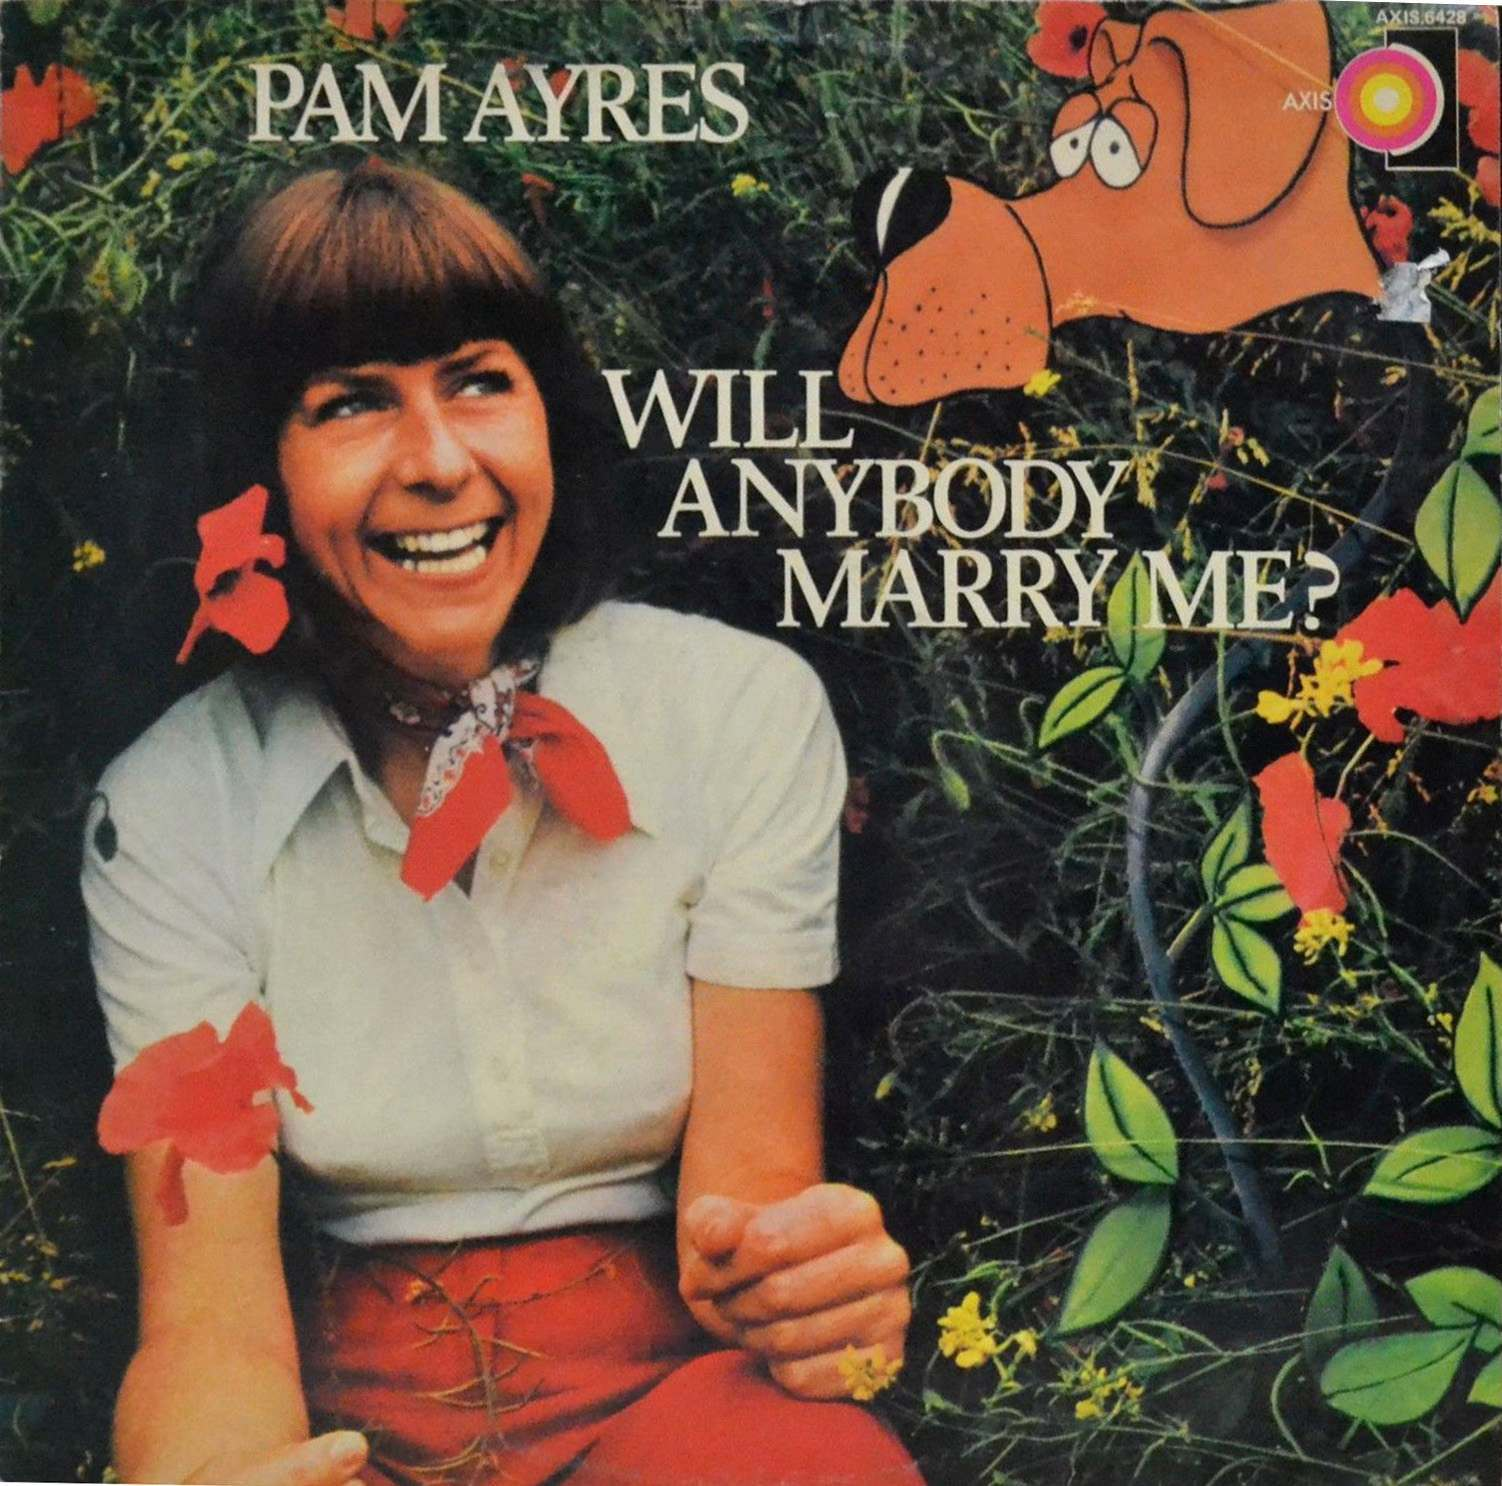 Pam Ayres, Will Anybody Marry Me, 1977